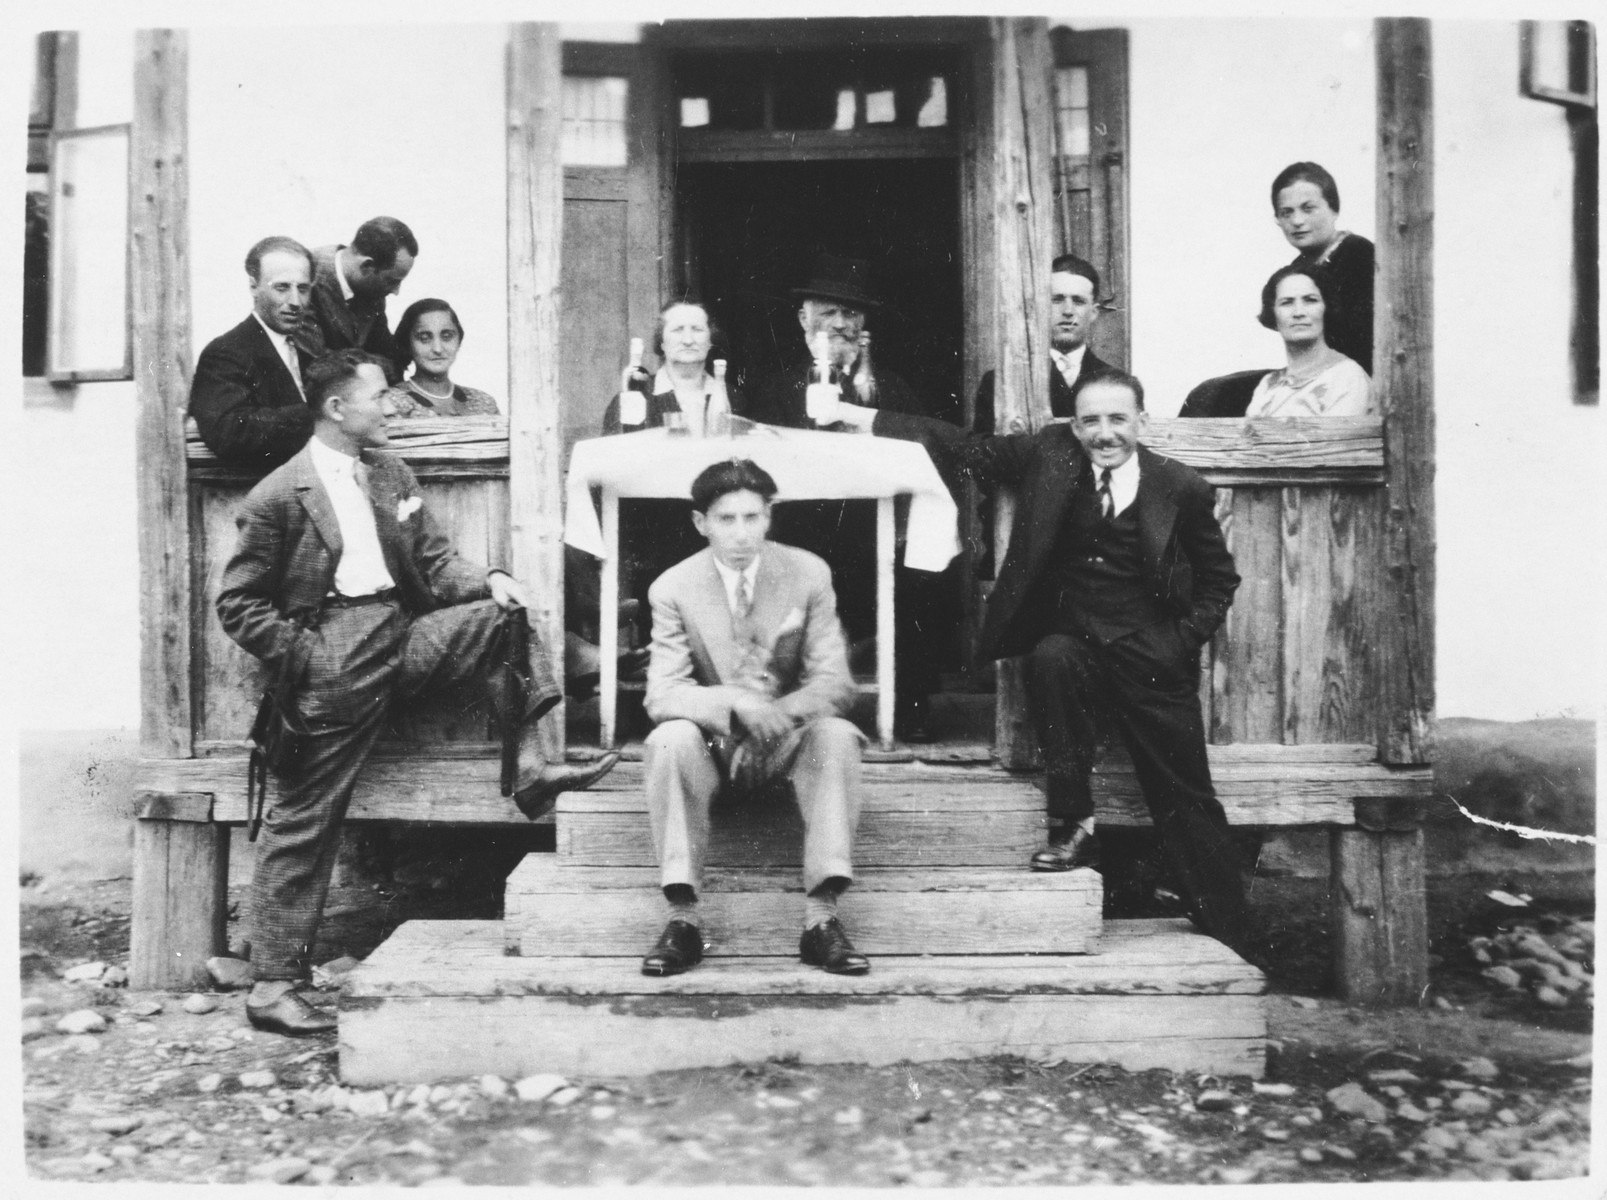 Members of the Katz family sit outside on the porch of their home in Cernauti, Romania.